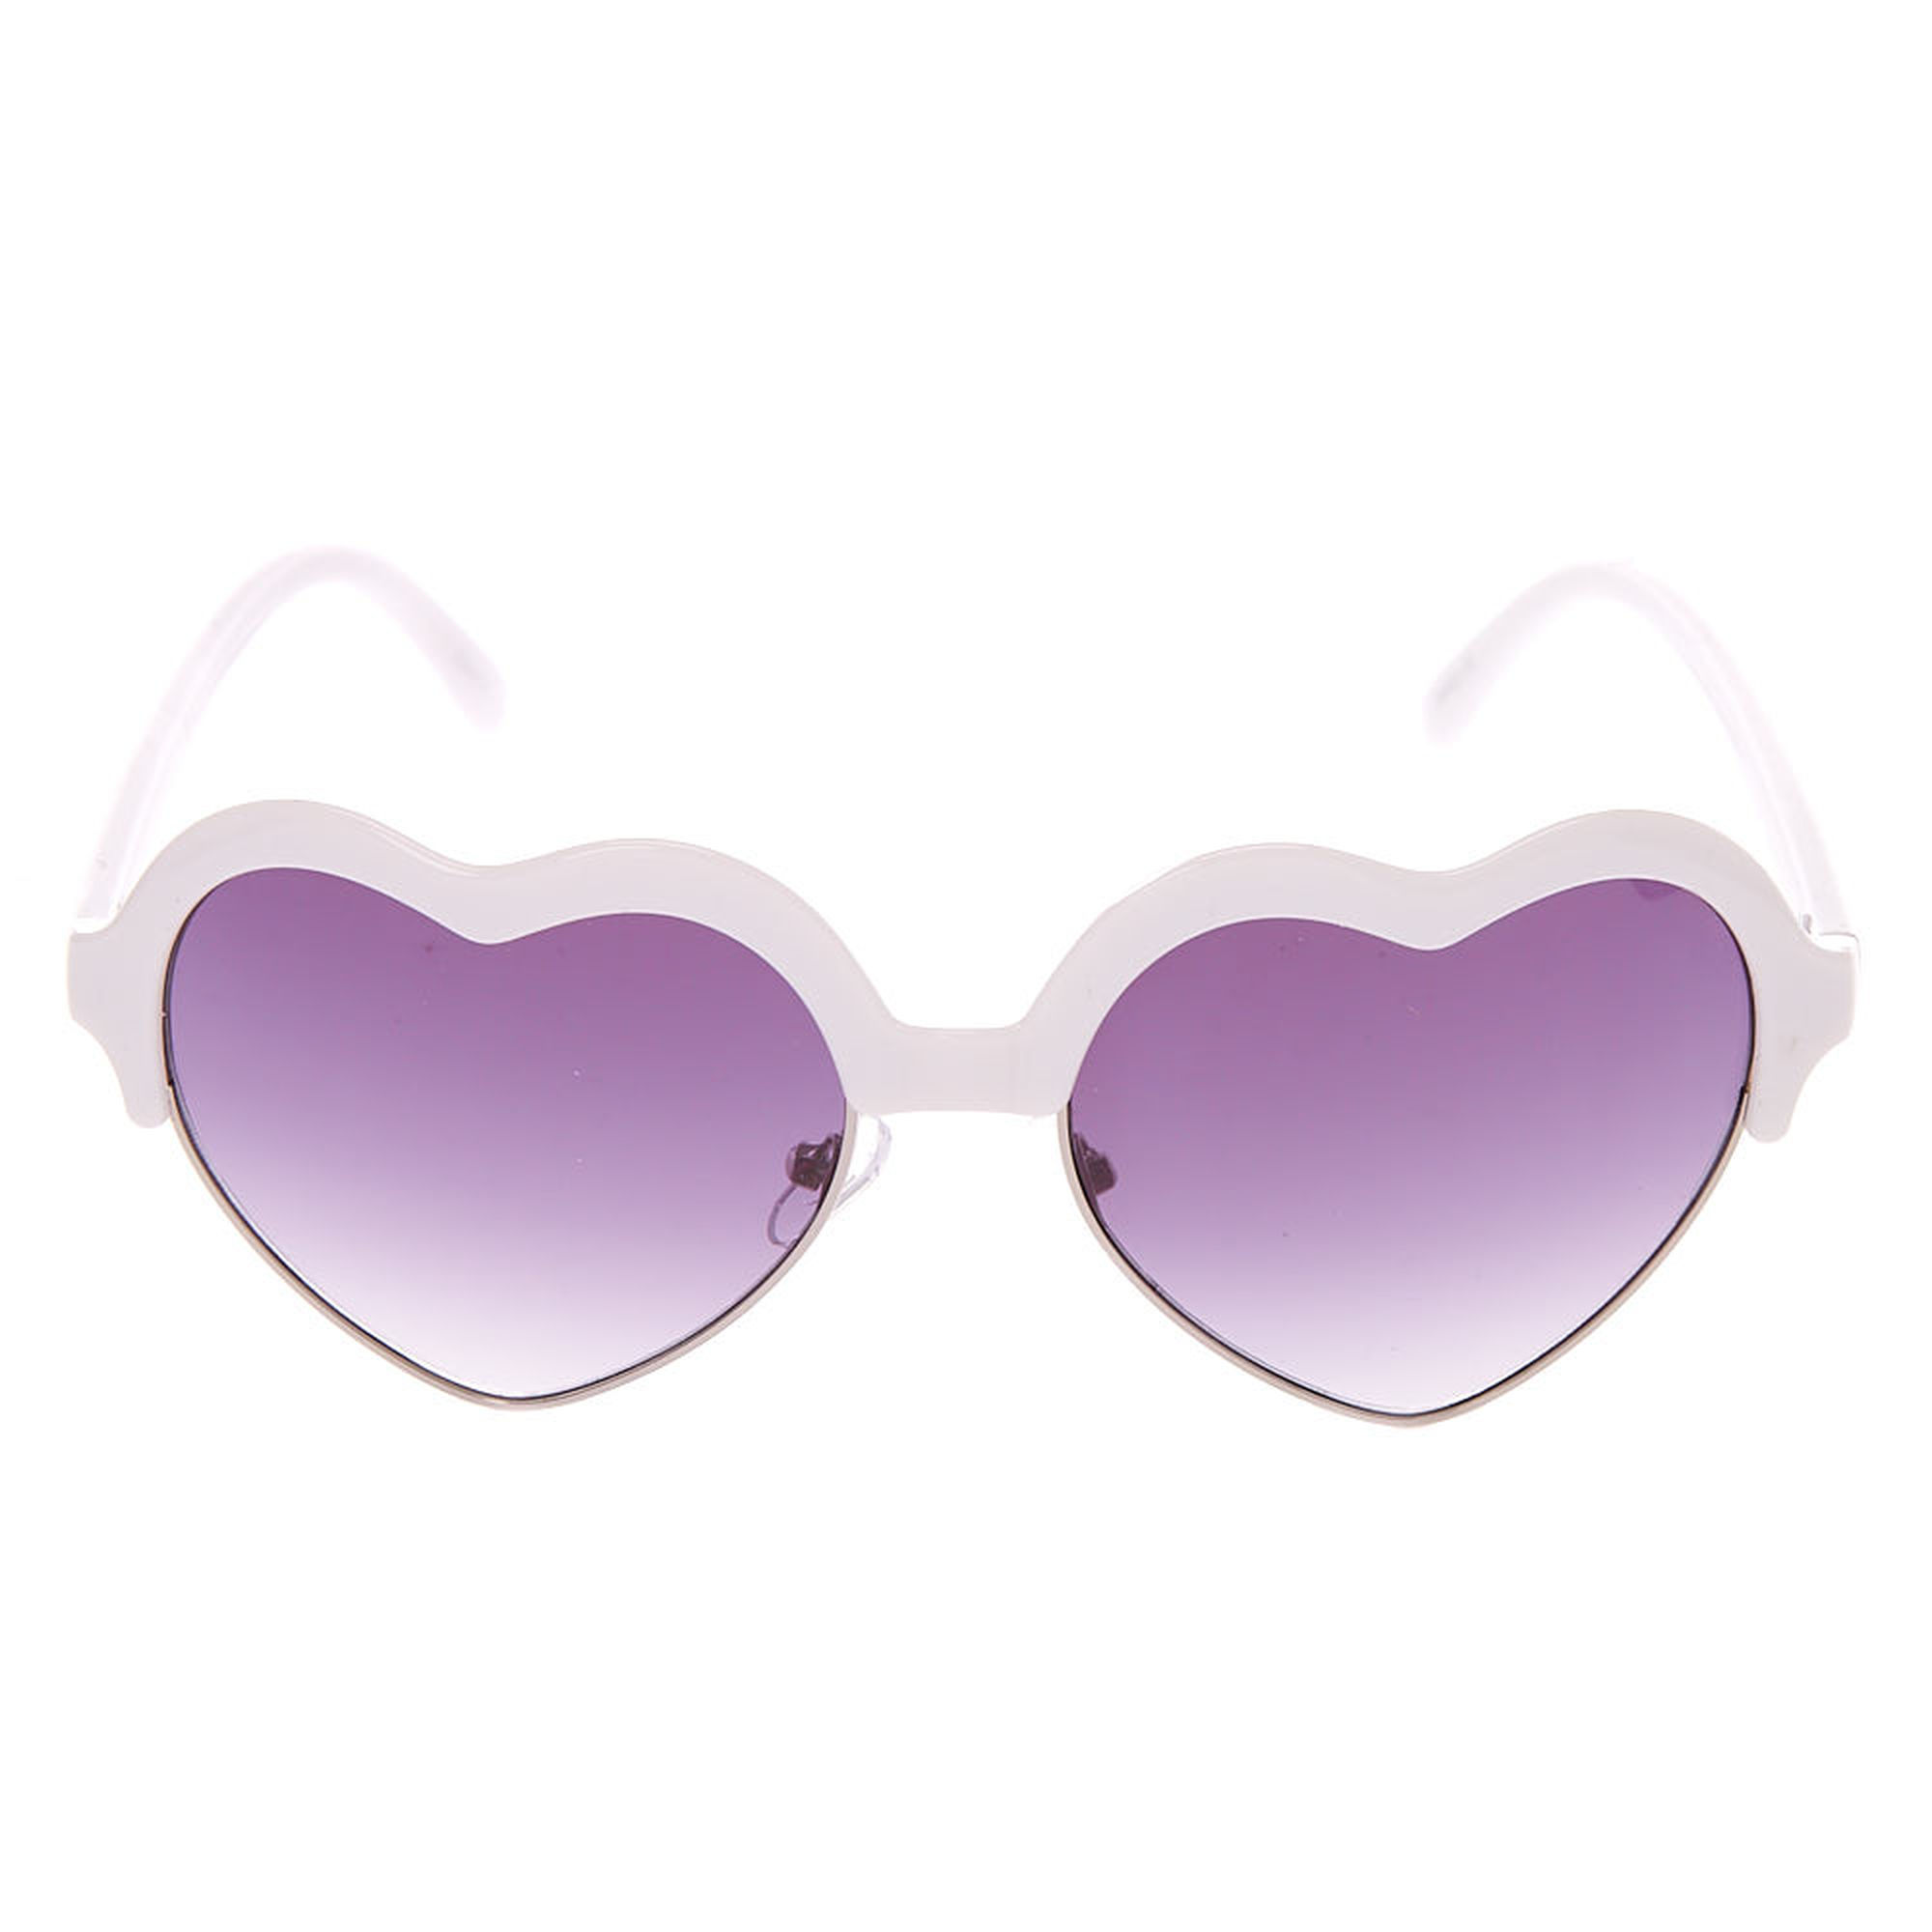 Claire's heart-shaped sunglasses